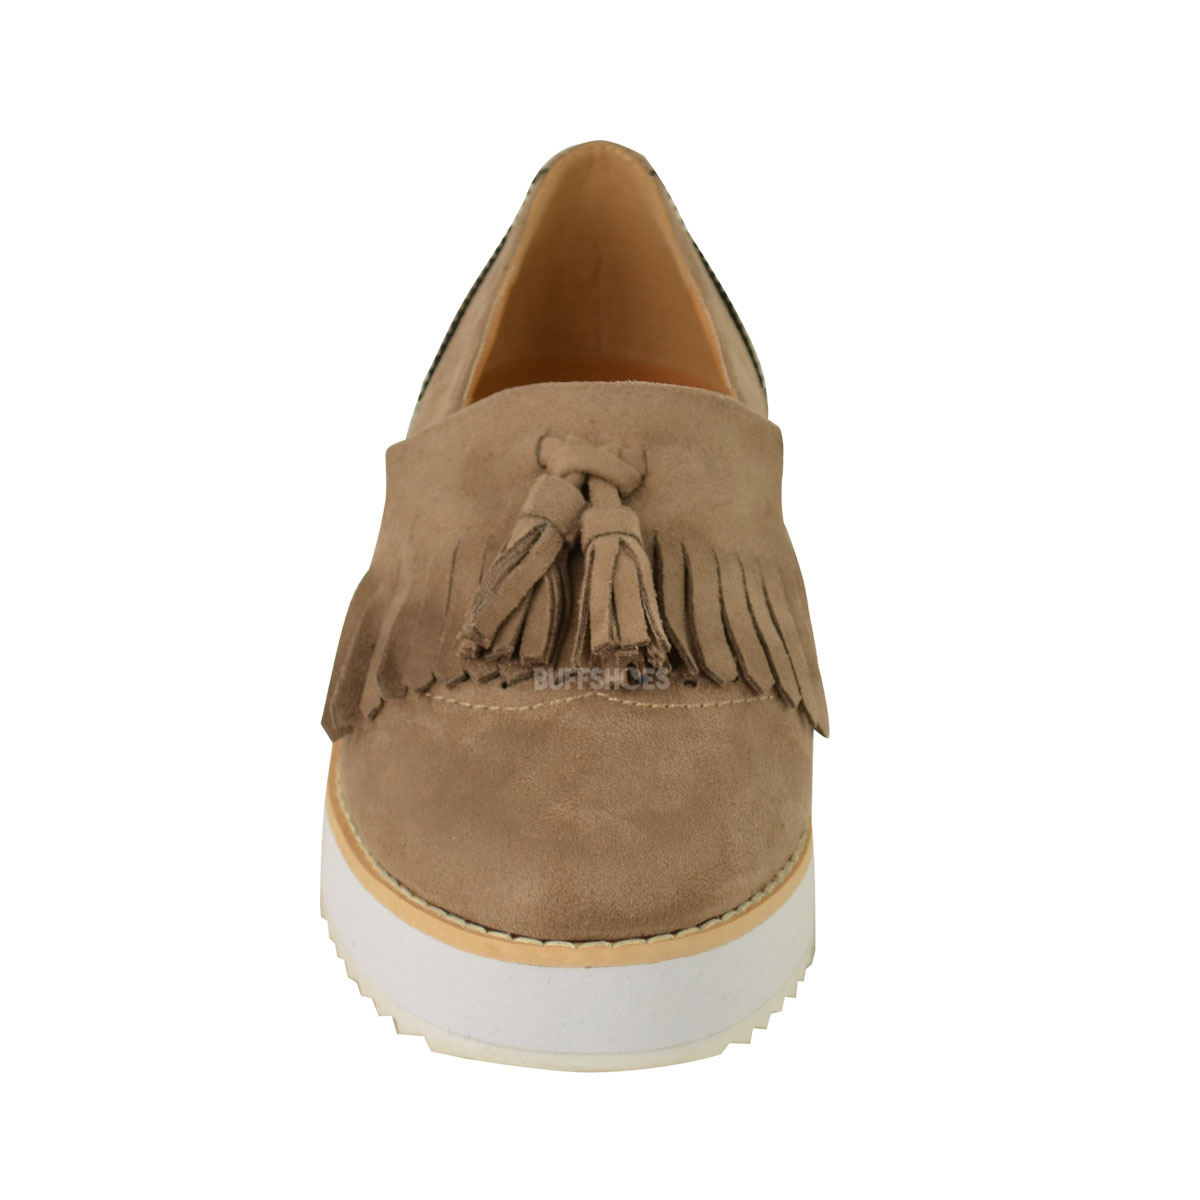 1da4796272f WOMENS LADIES LOAFERS FLAT SHOES CHUNKY CLEATED SOLE OFFICE SMART ...